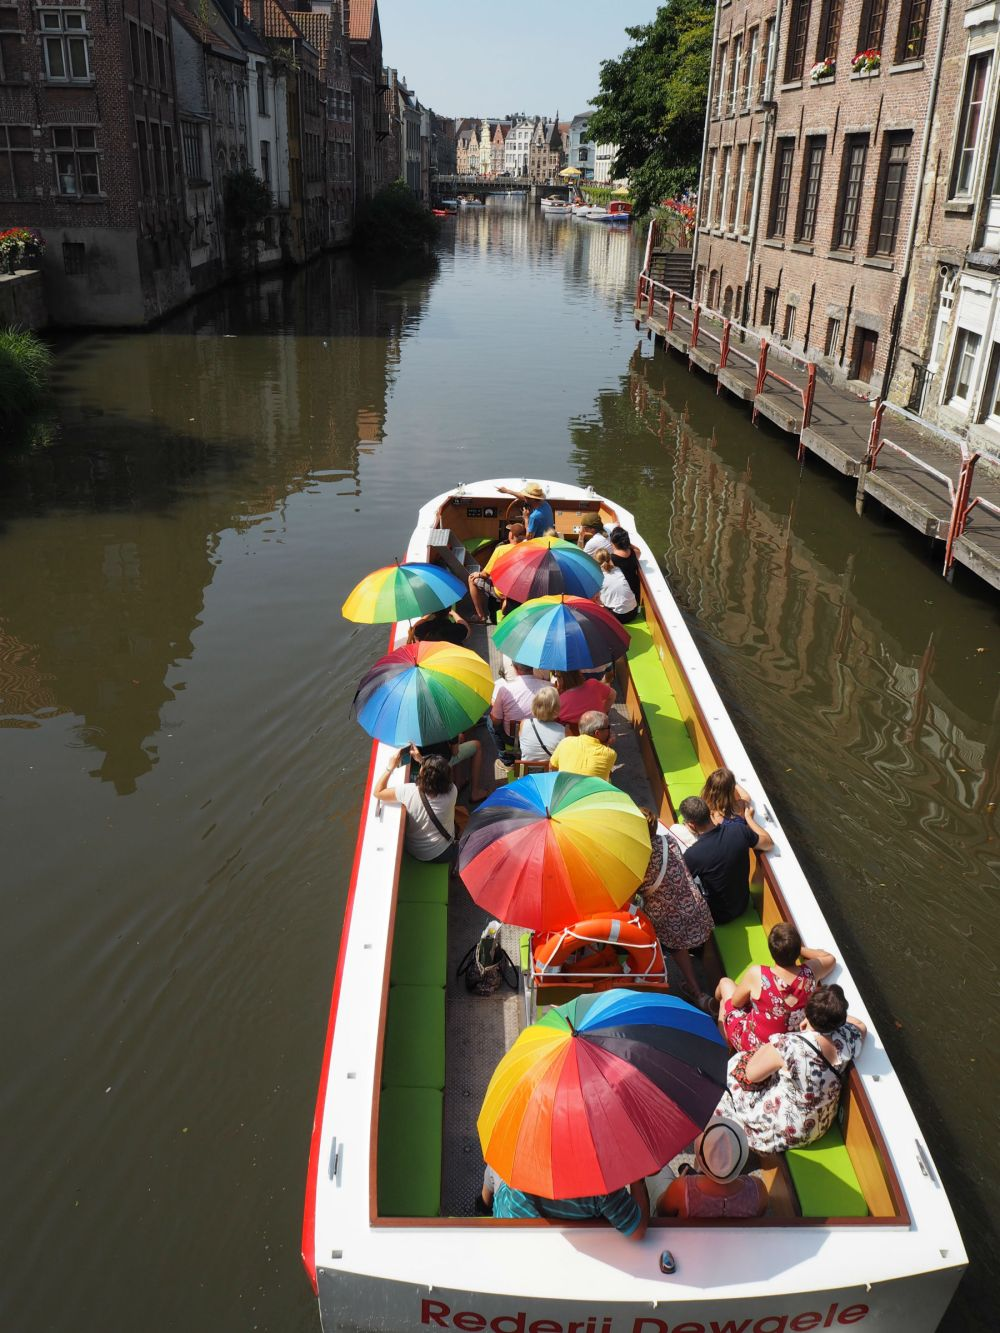 Boat tour in Ghent. 15 things to do in Ghent, Belgium | Belgium travel | Ghent travel | Ghent itinerary | Explore Ghent |